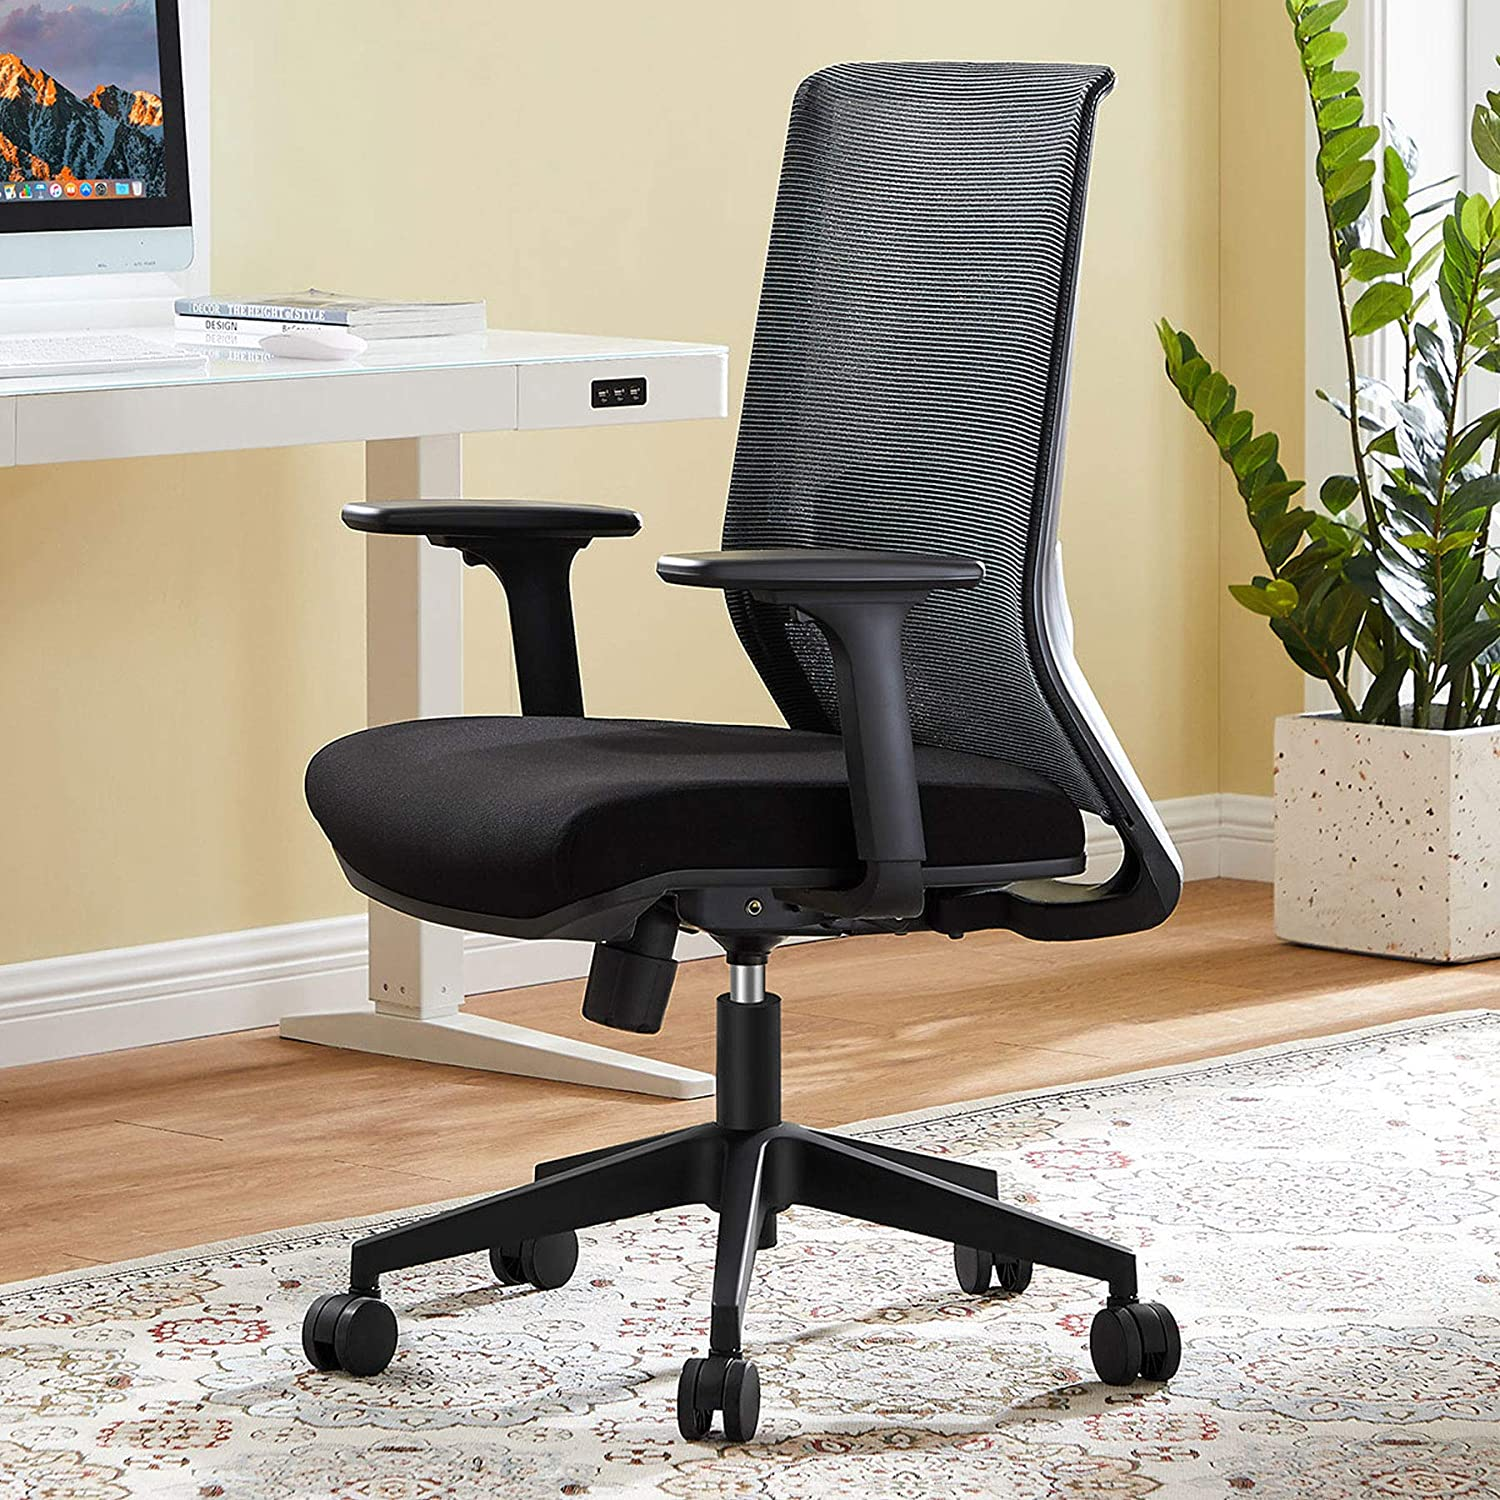 Ergonomic Office Chair, Big and Tall Home Office Desk Chair with 3D Armrest, Tribesigns Mid Back Mesh Computer Chair with Lumbar Support, Wide Seat and Rolling Swive for Women Men, Black